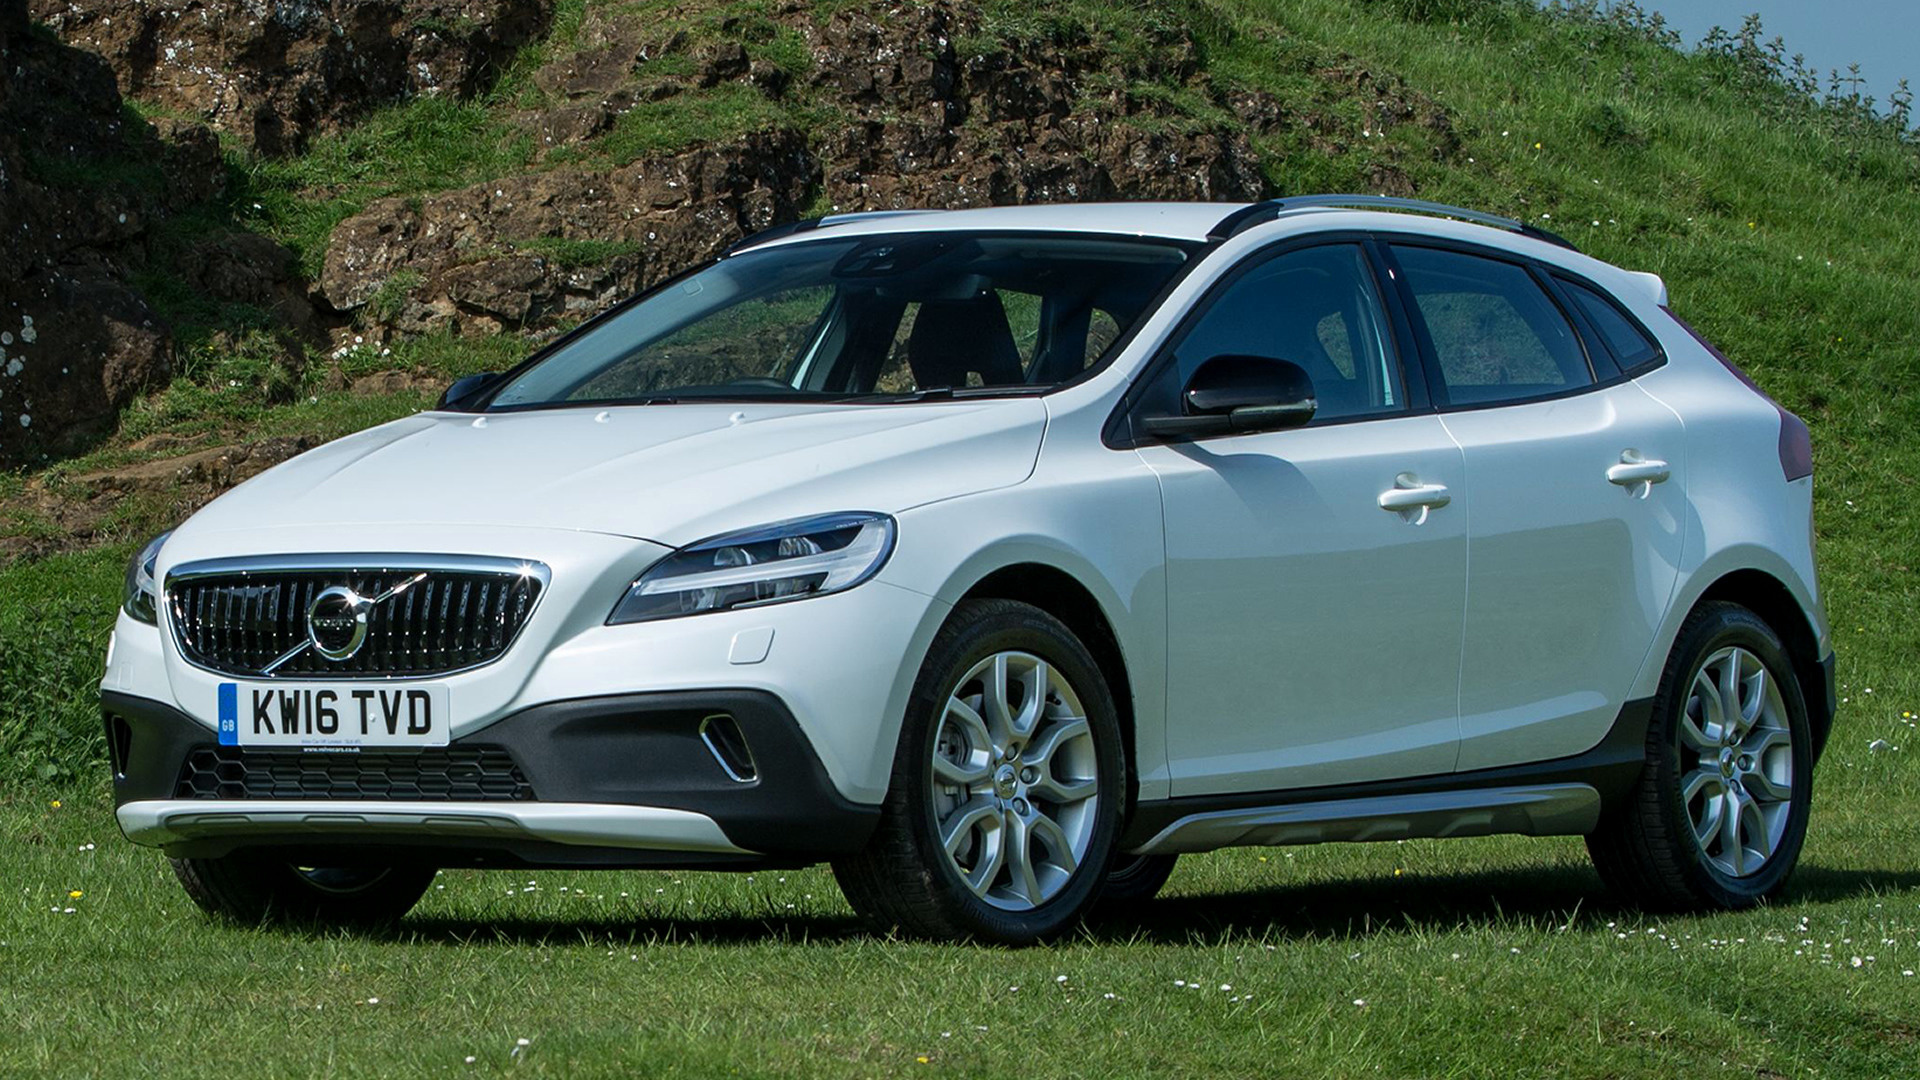 volvo v40 cross country 2016 uk wallpapers and hd images car pixel. Black Bedroom Furniture Sets. Home Design Ideas